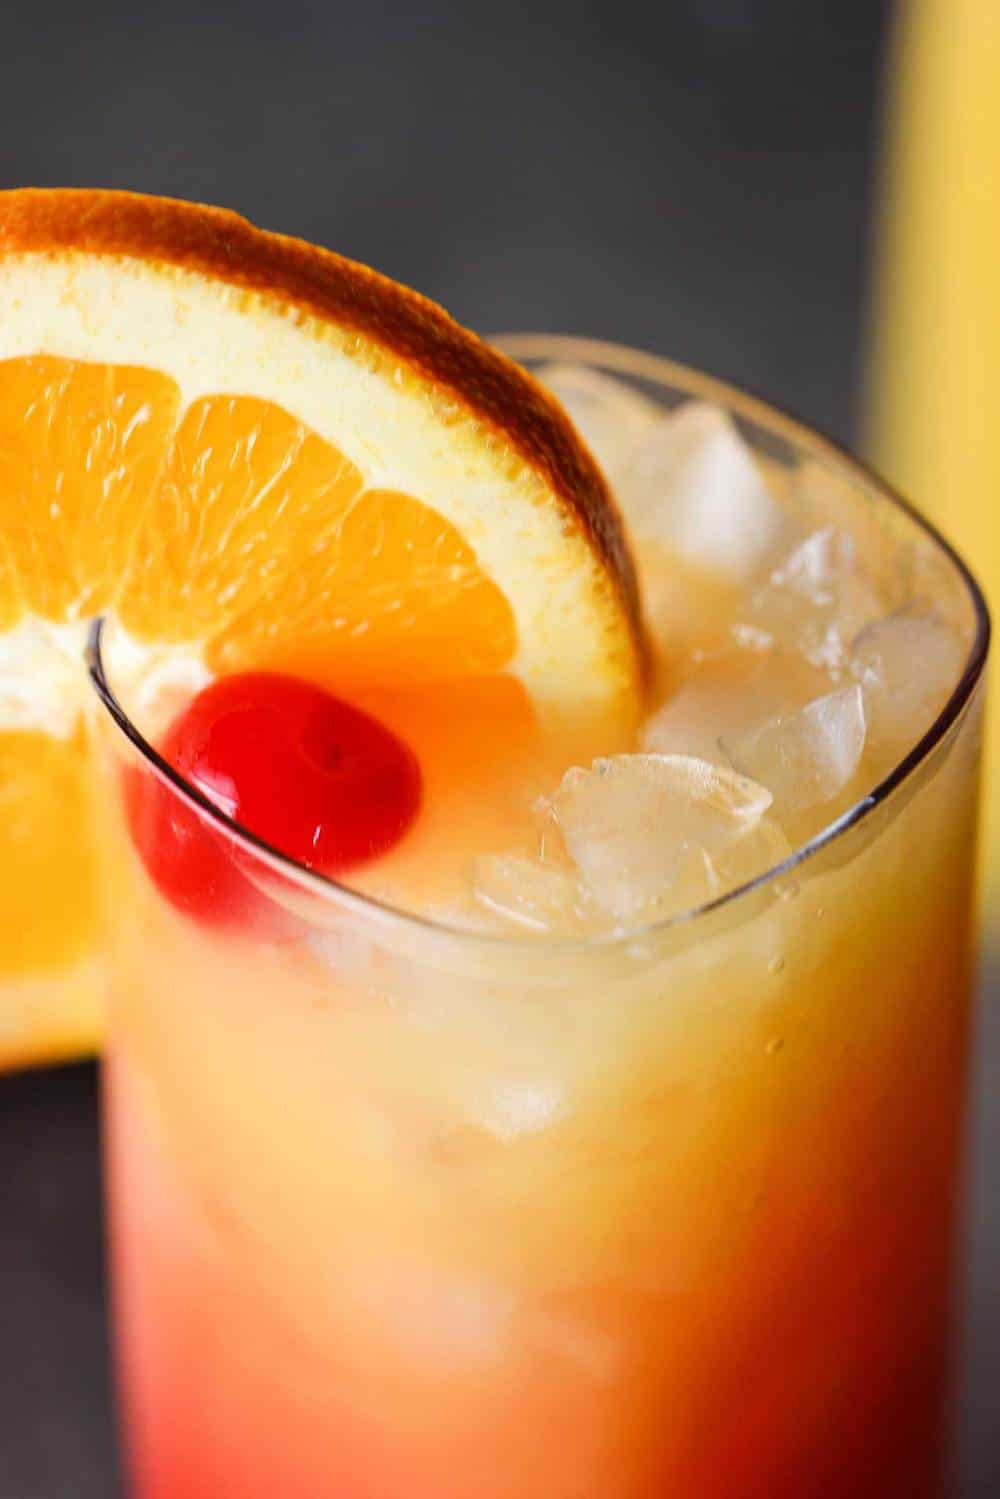 Close up shot of a tequila sunrise with a large wagon wheel orange garnish on the glass.